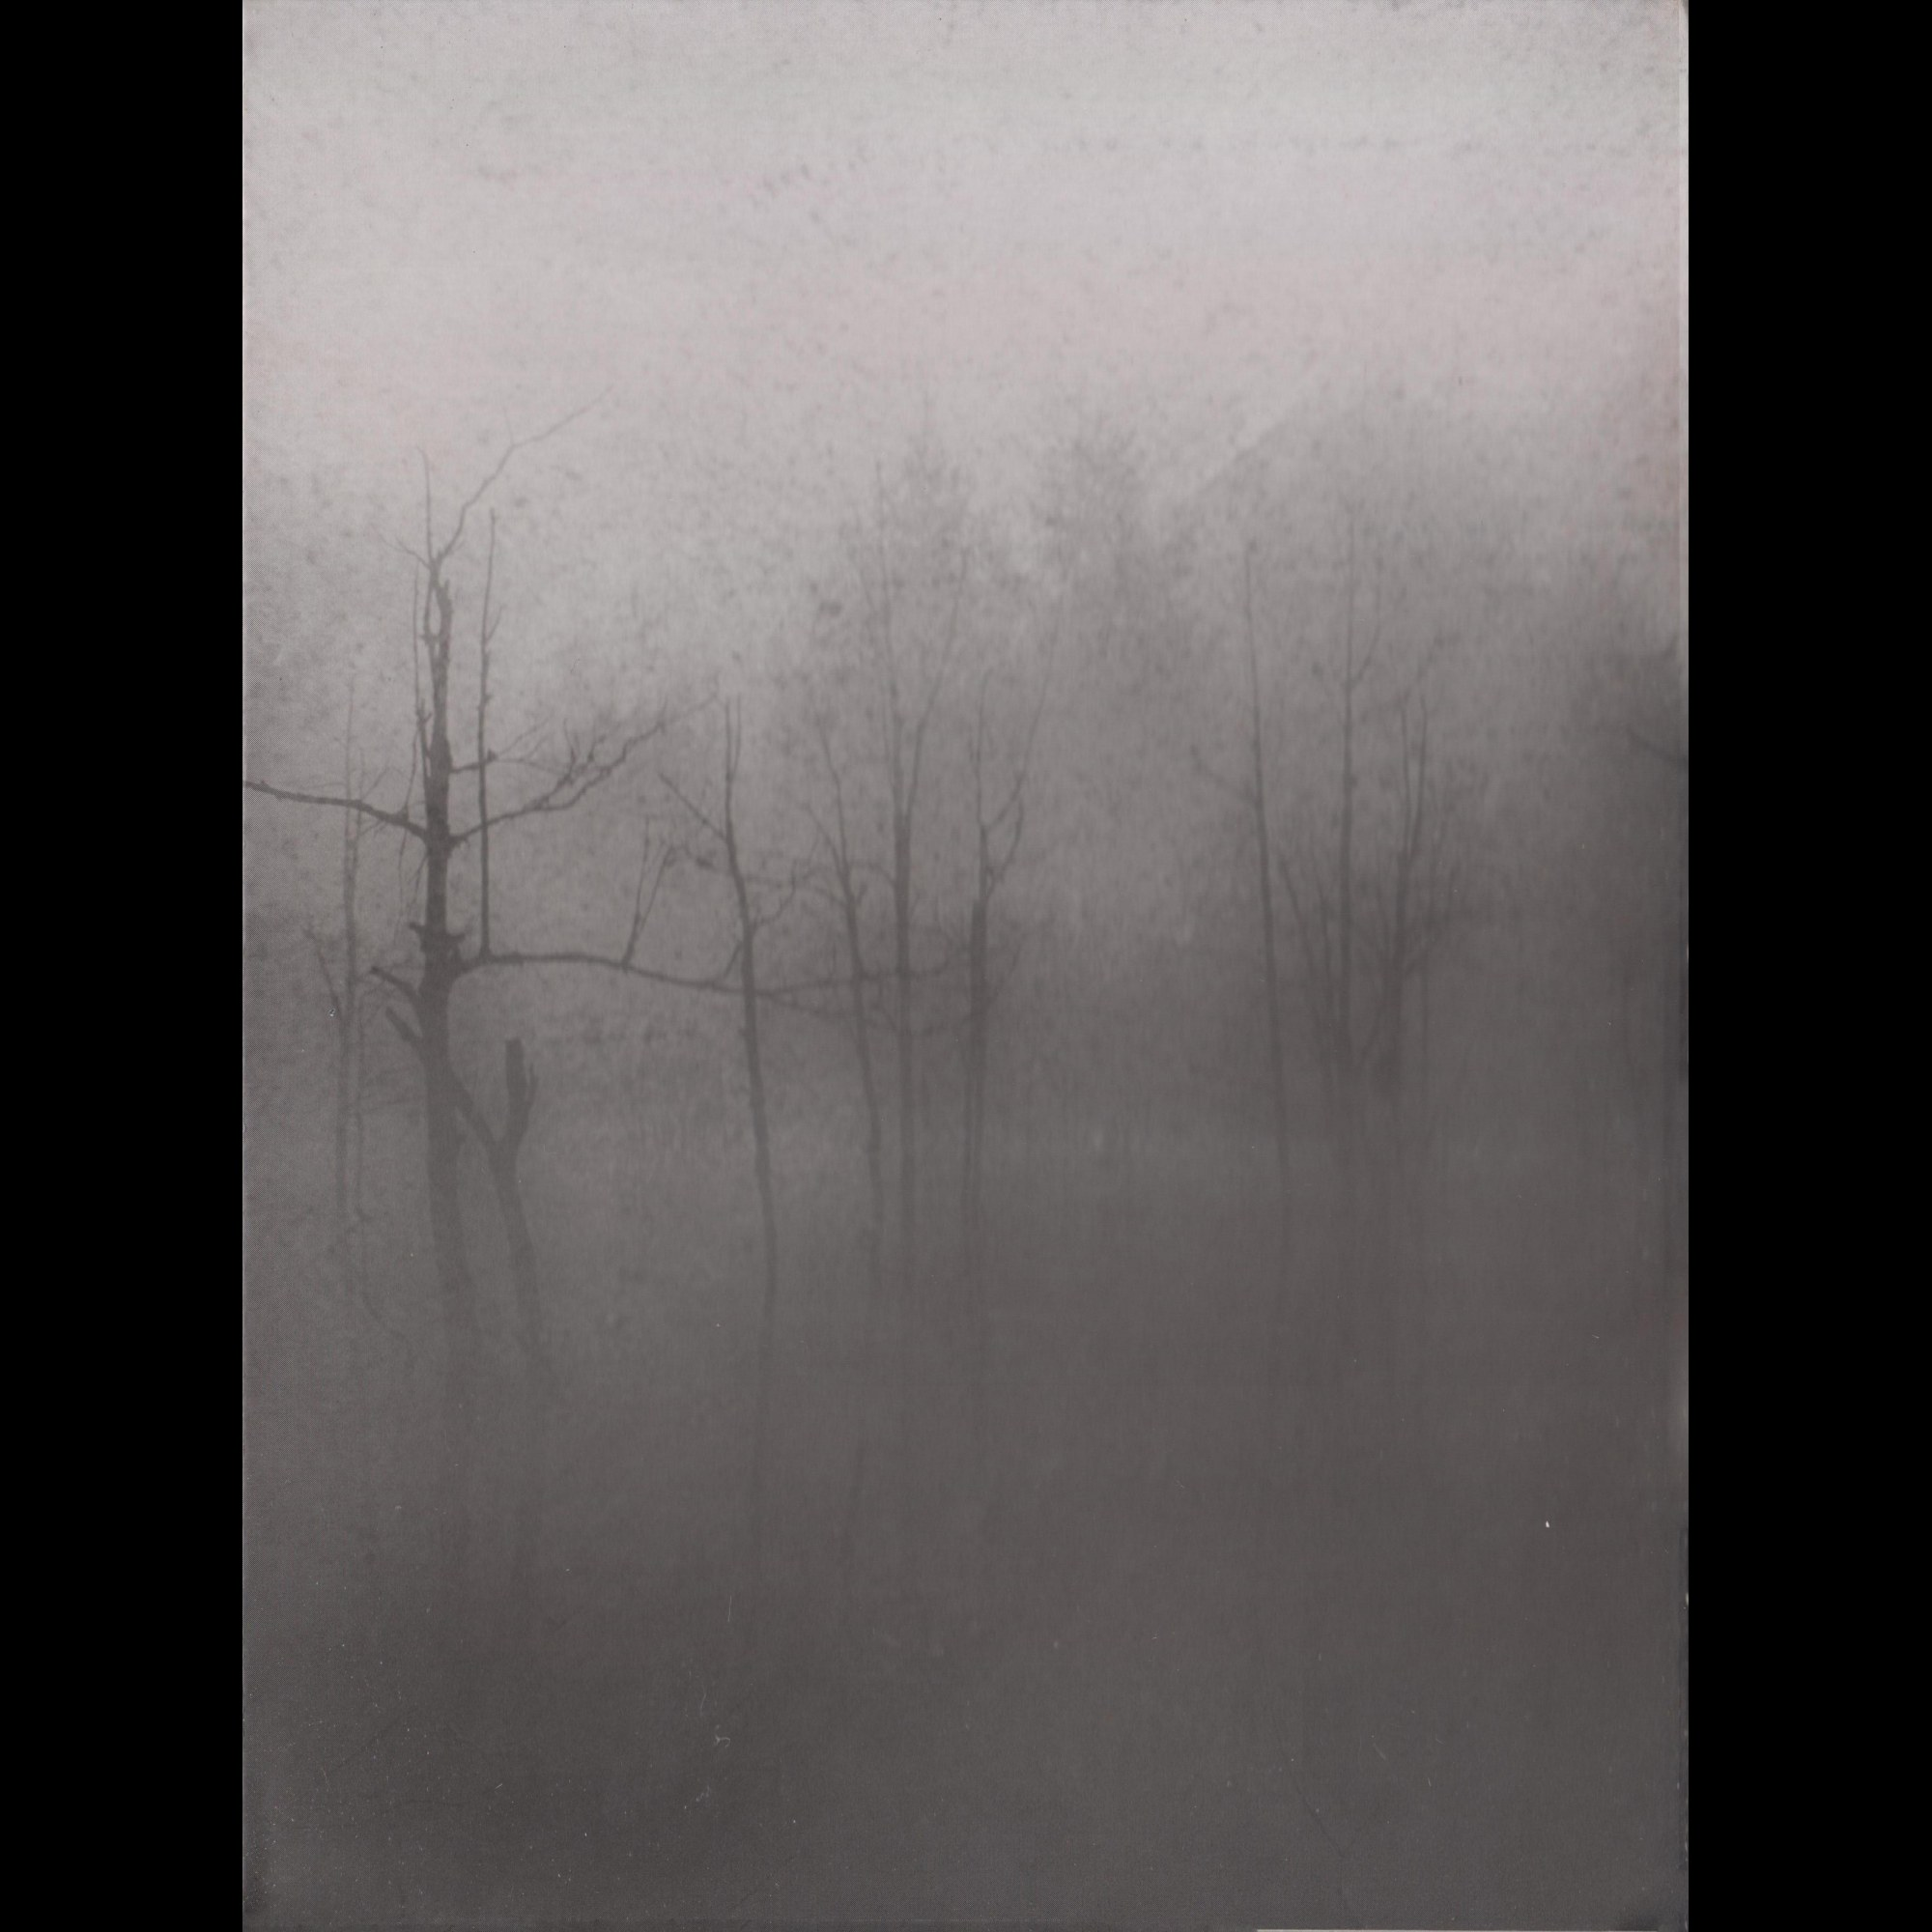 Review for Dark Fount - A Sapless Leave Withering in the Night Fog